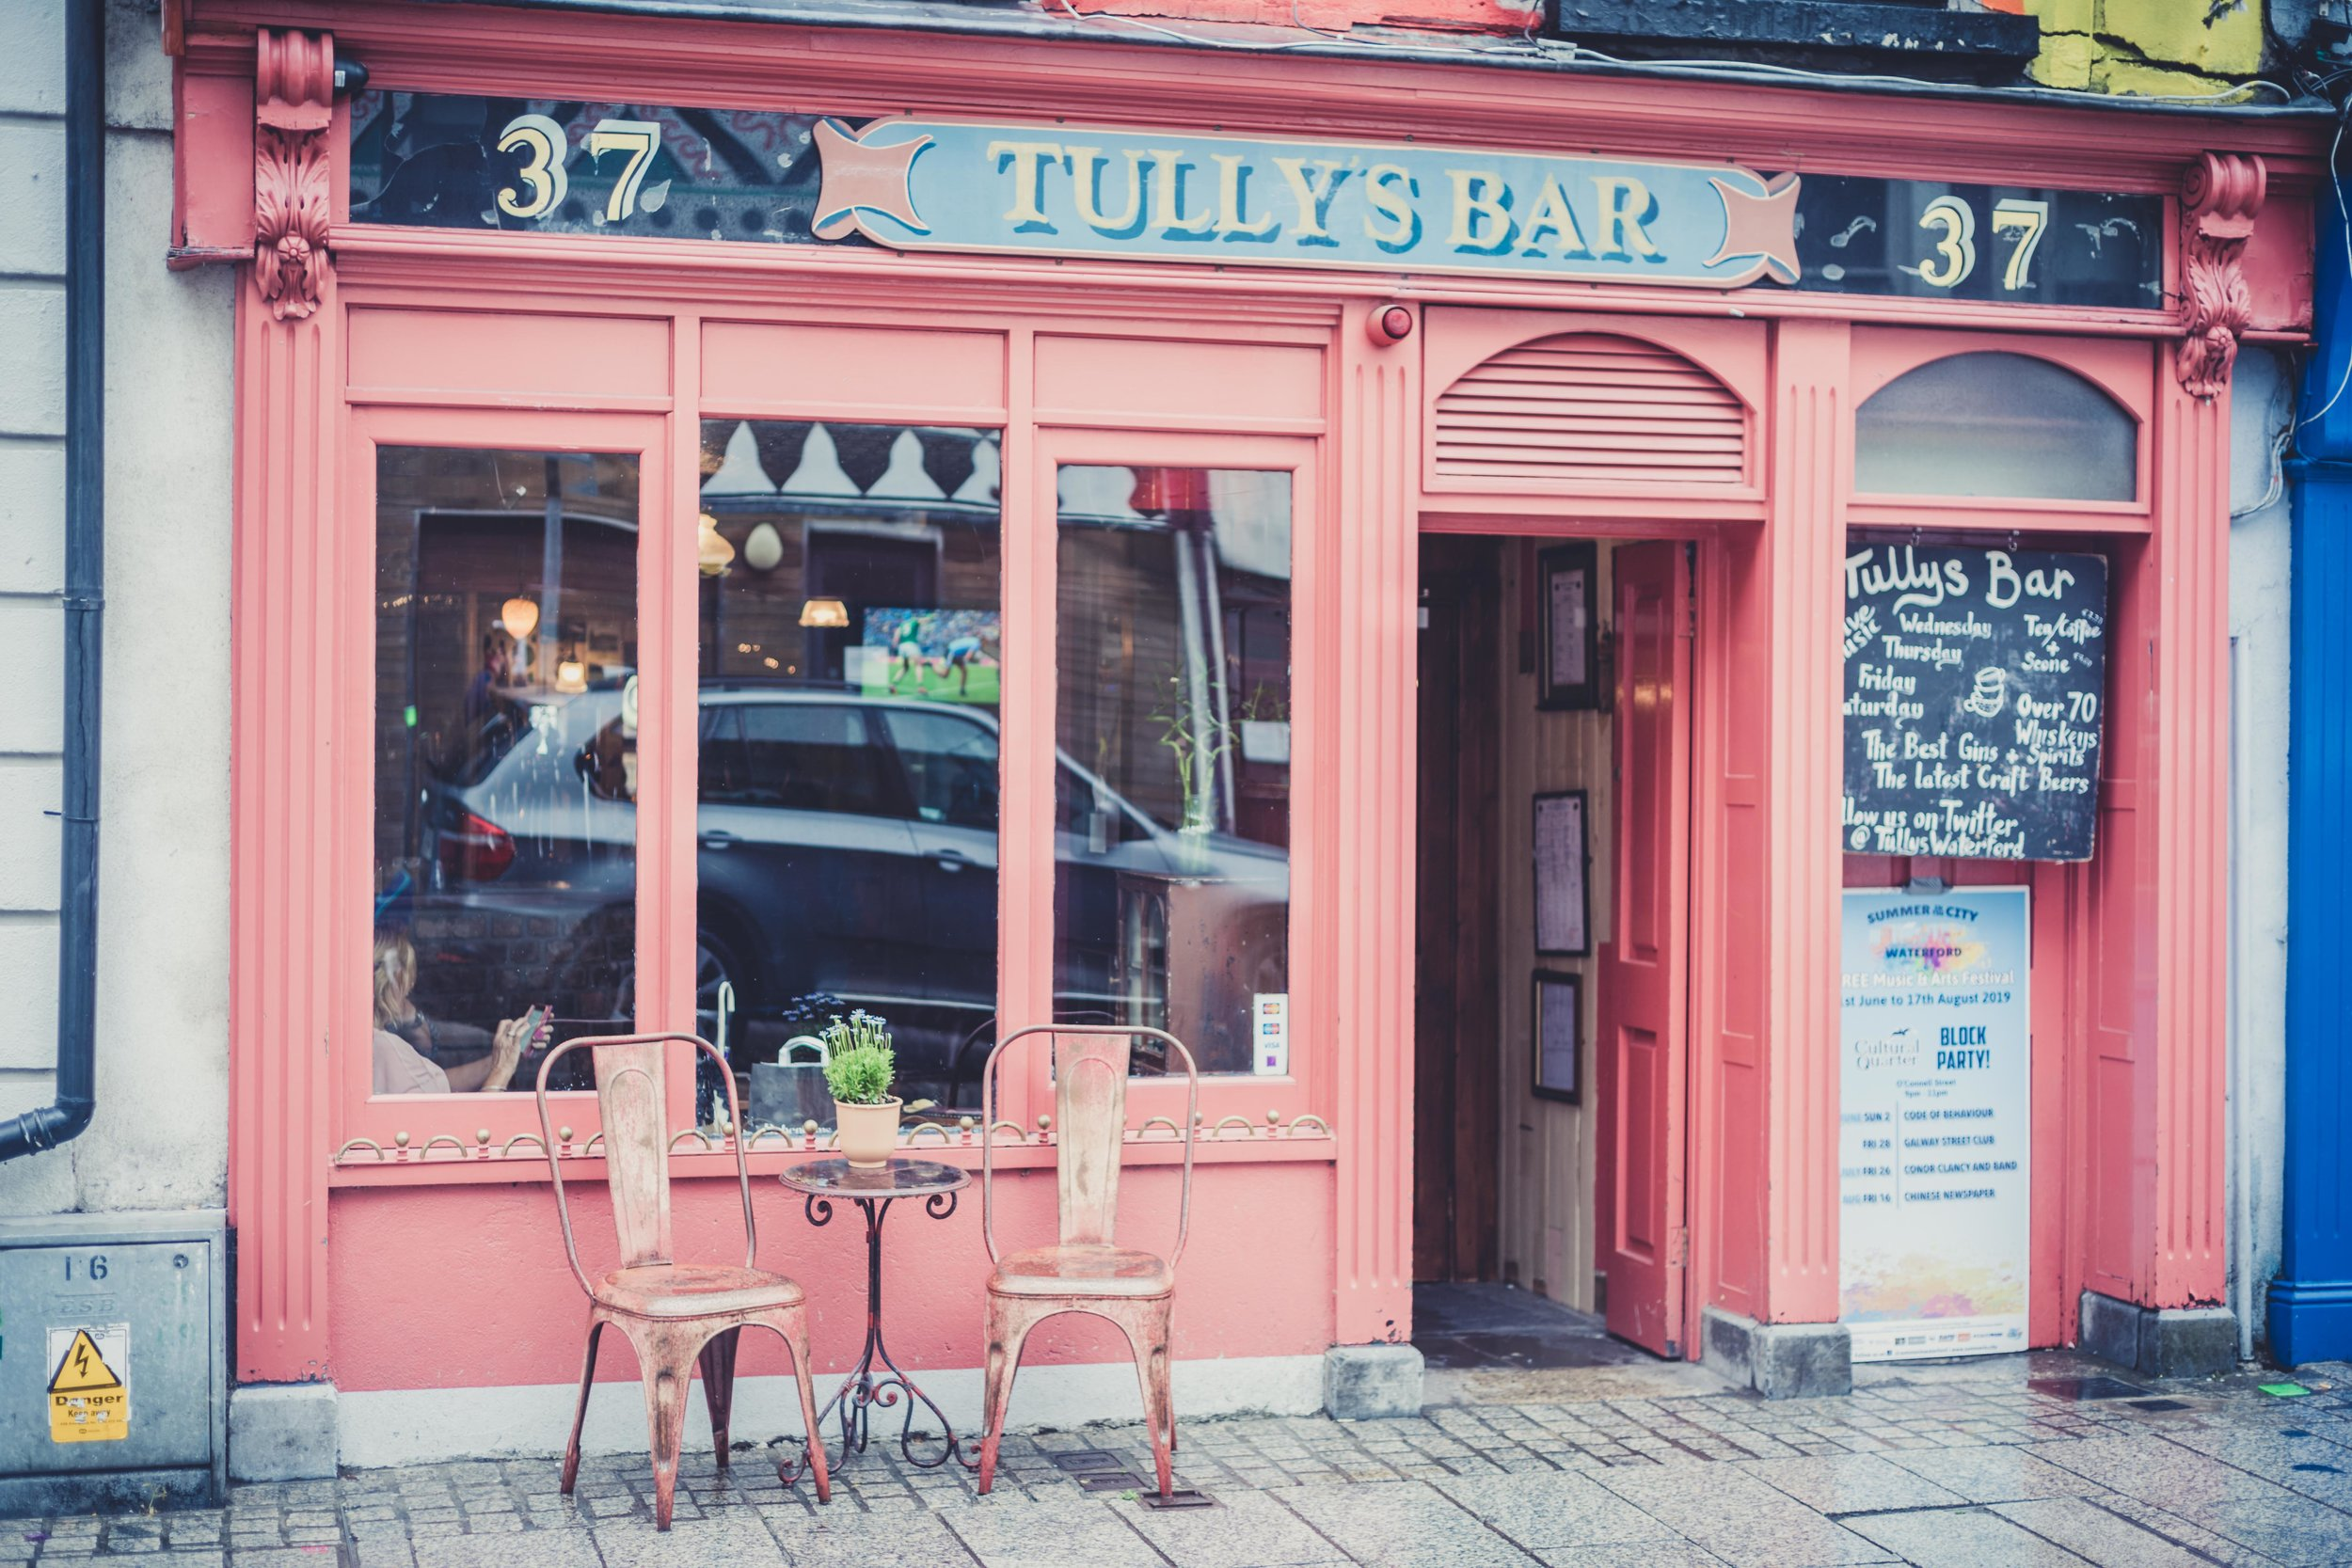 Tullys bar waterford ireland front.jpg